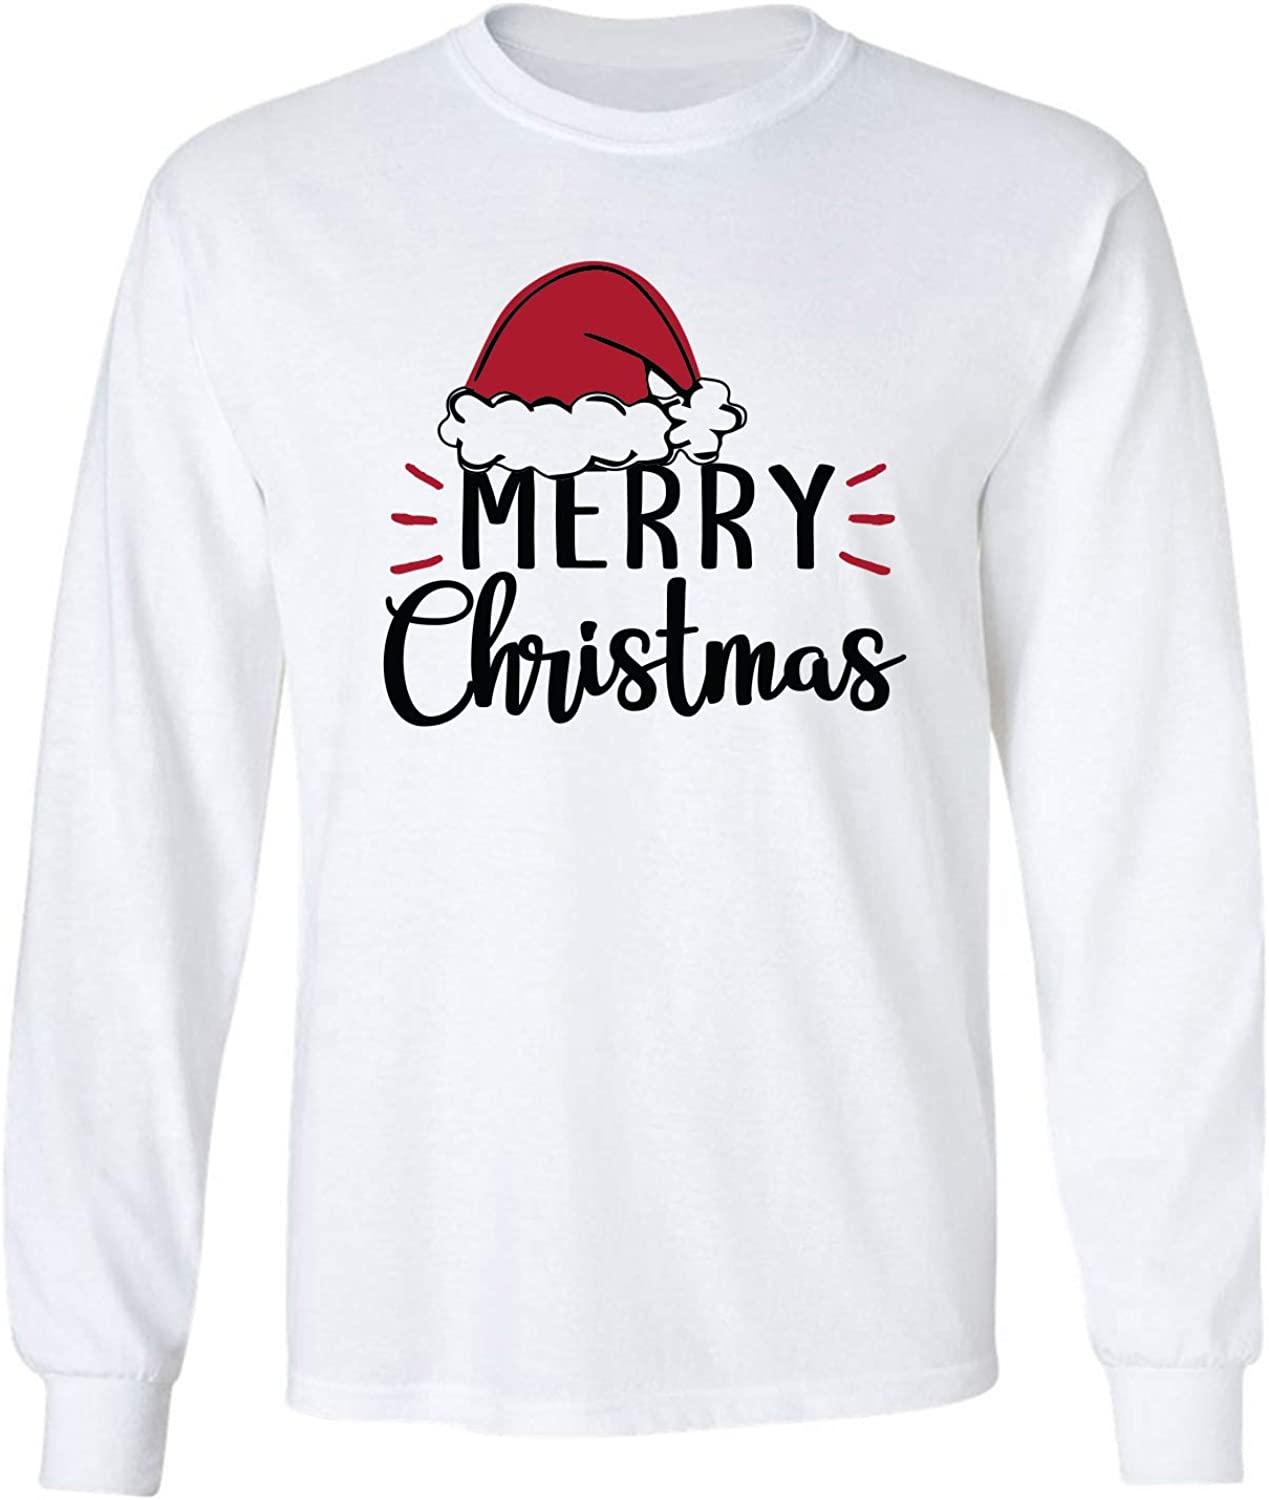 Merry Christmas Hat Adult Long Sleeve T-Shirt in White - XXXX-Large